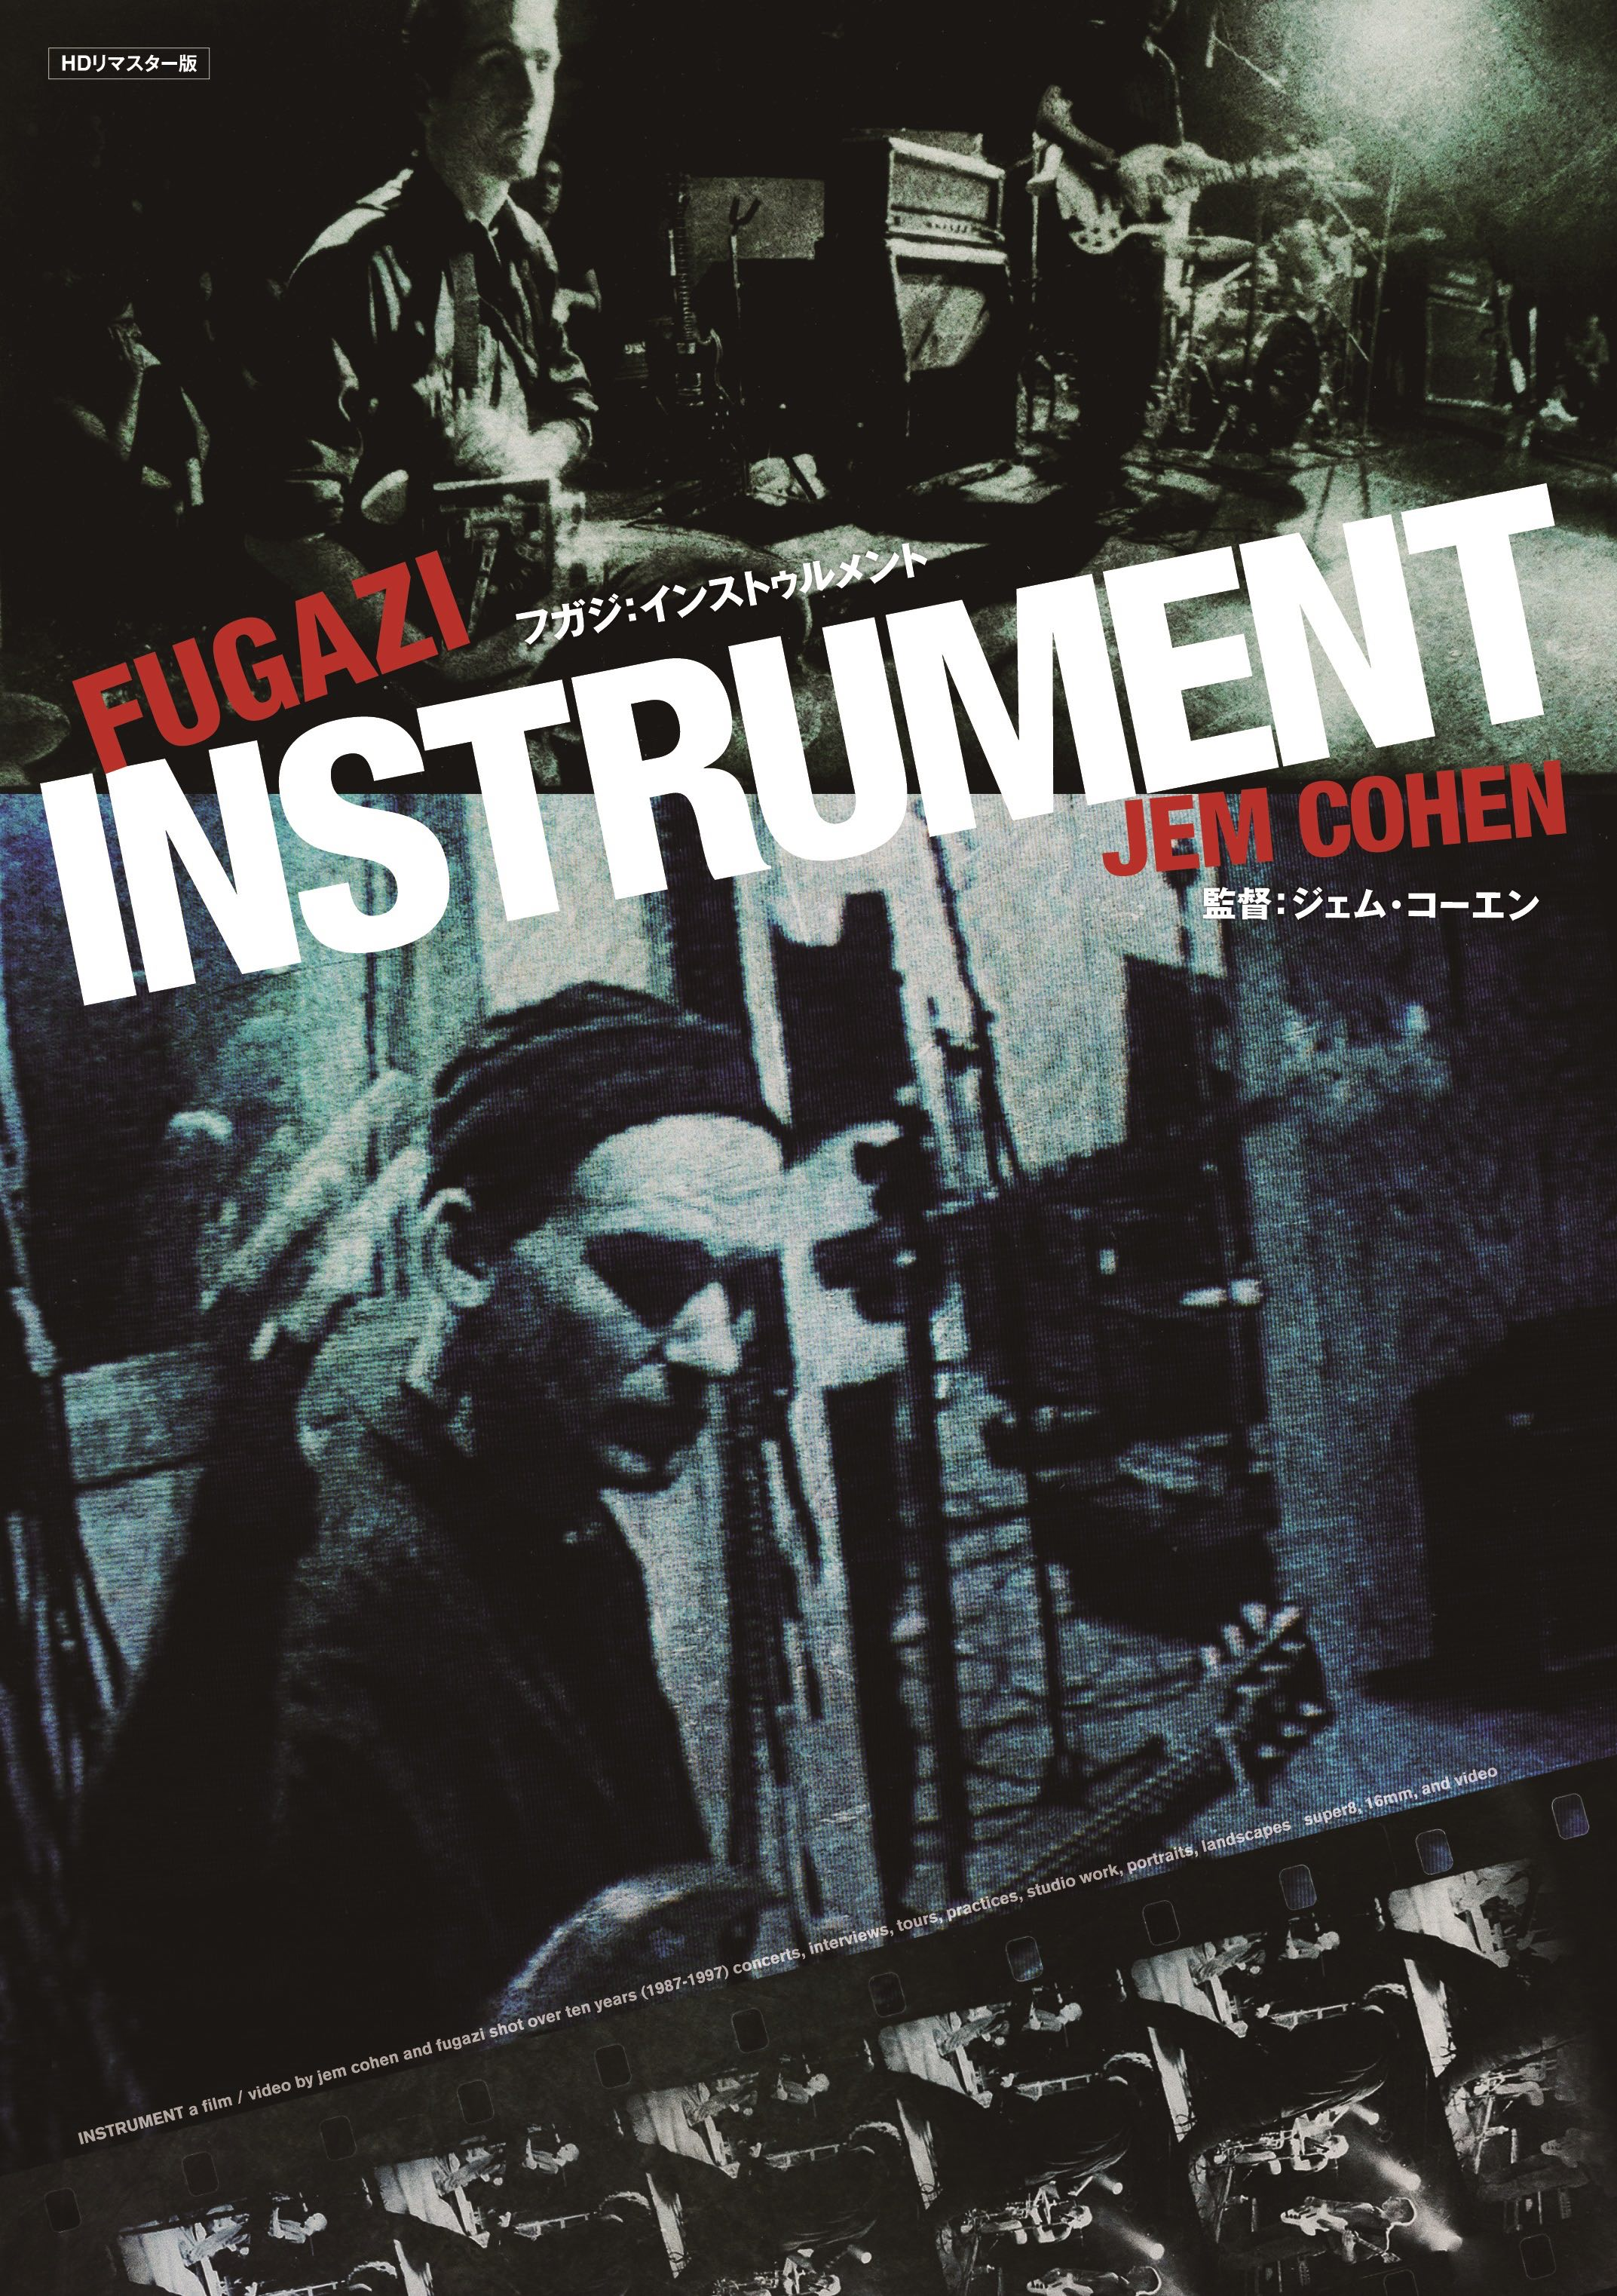 instrument_flyer_front